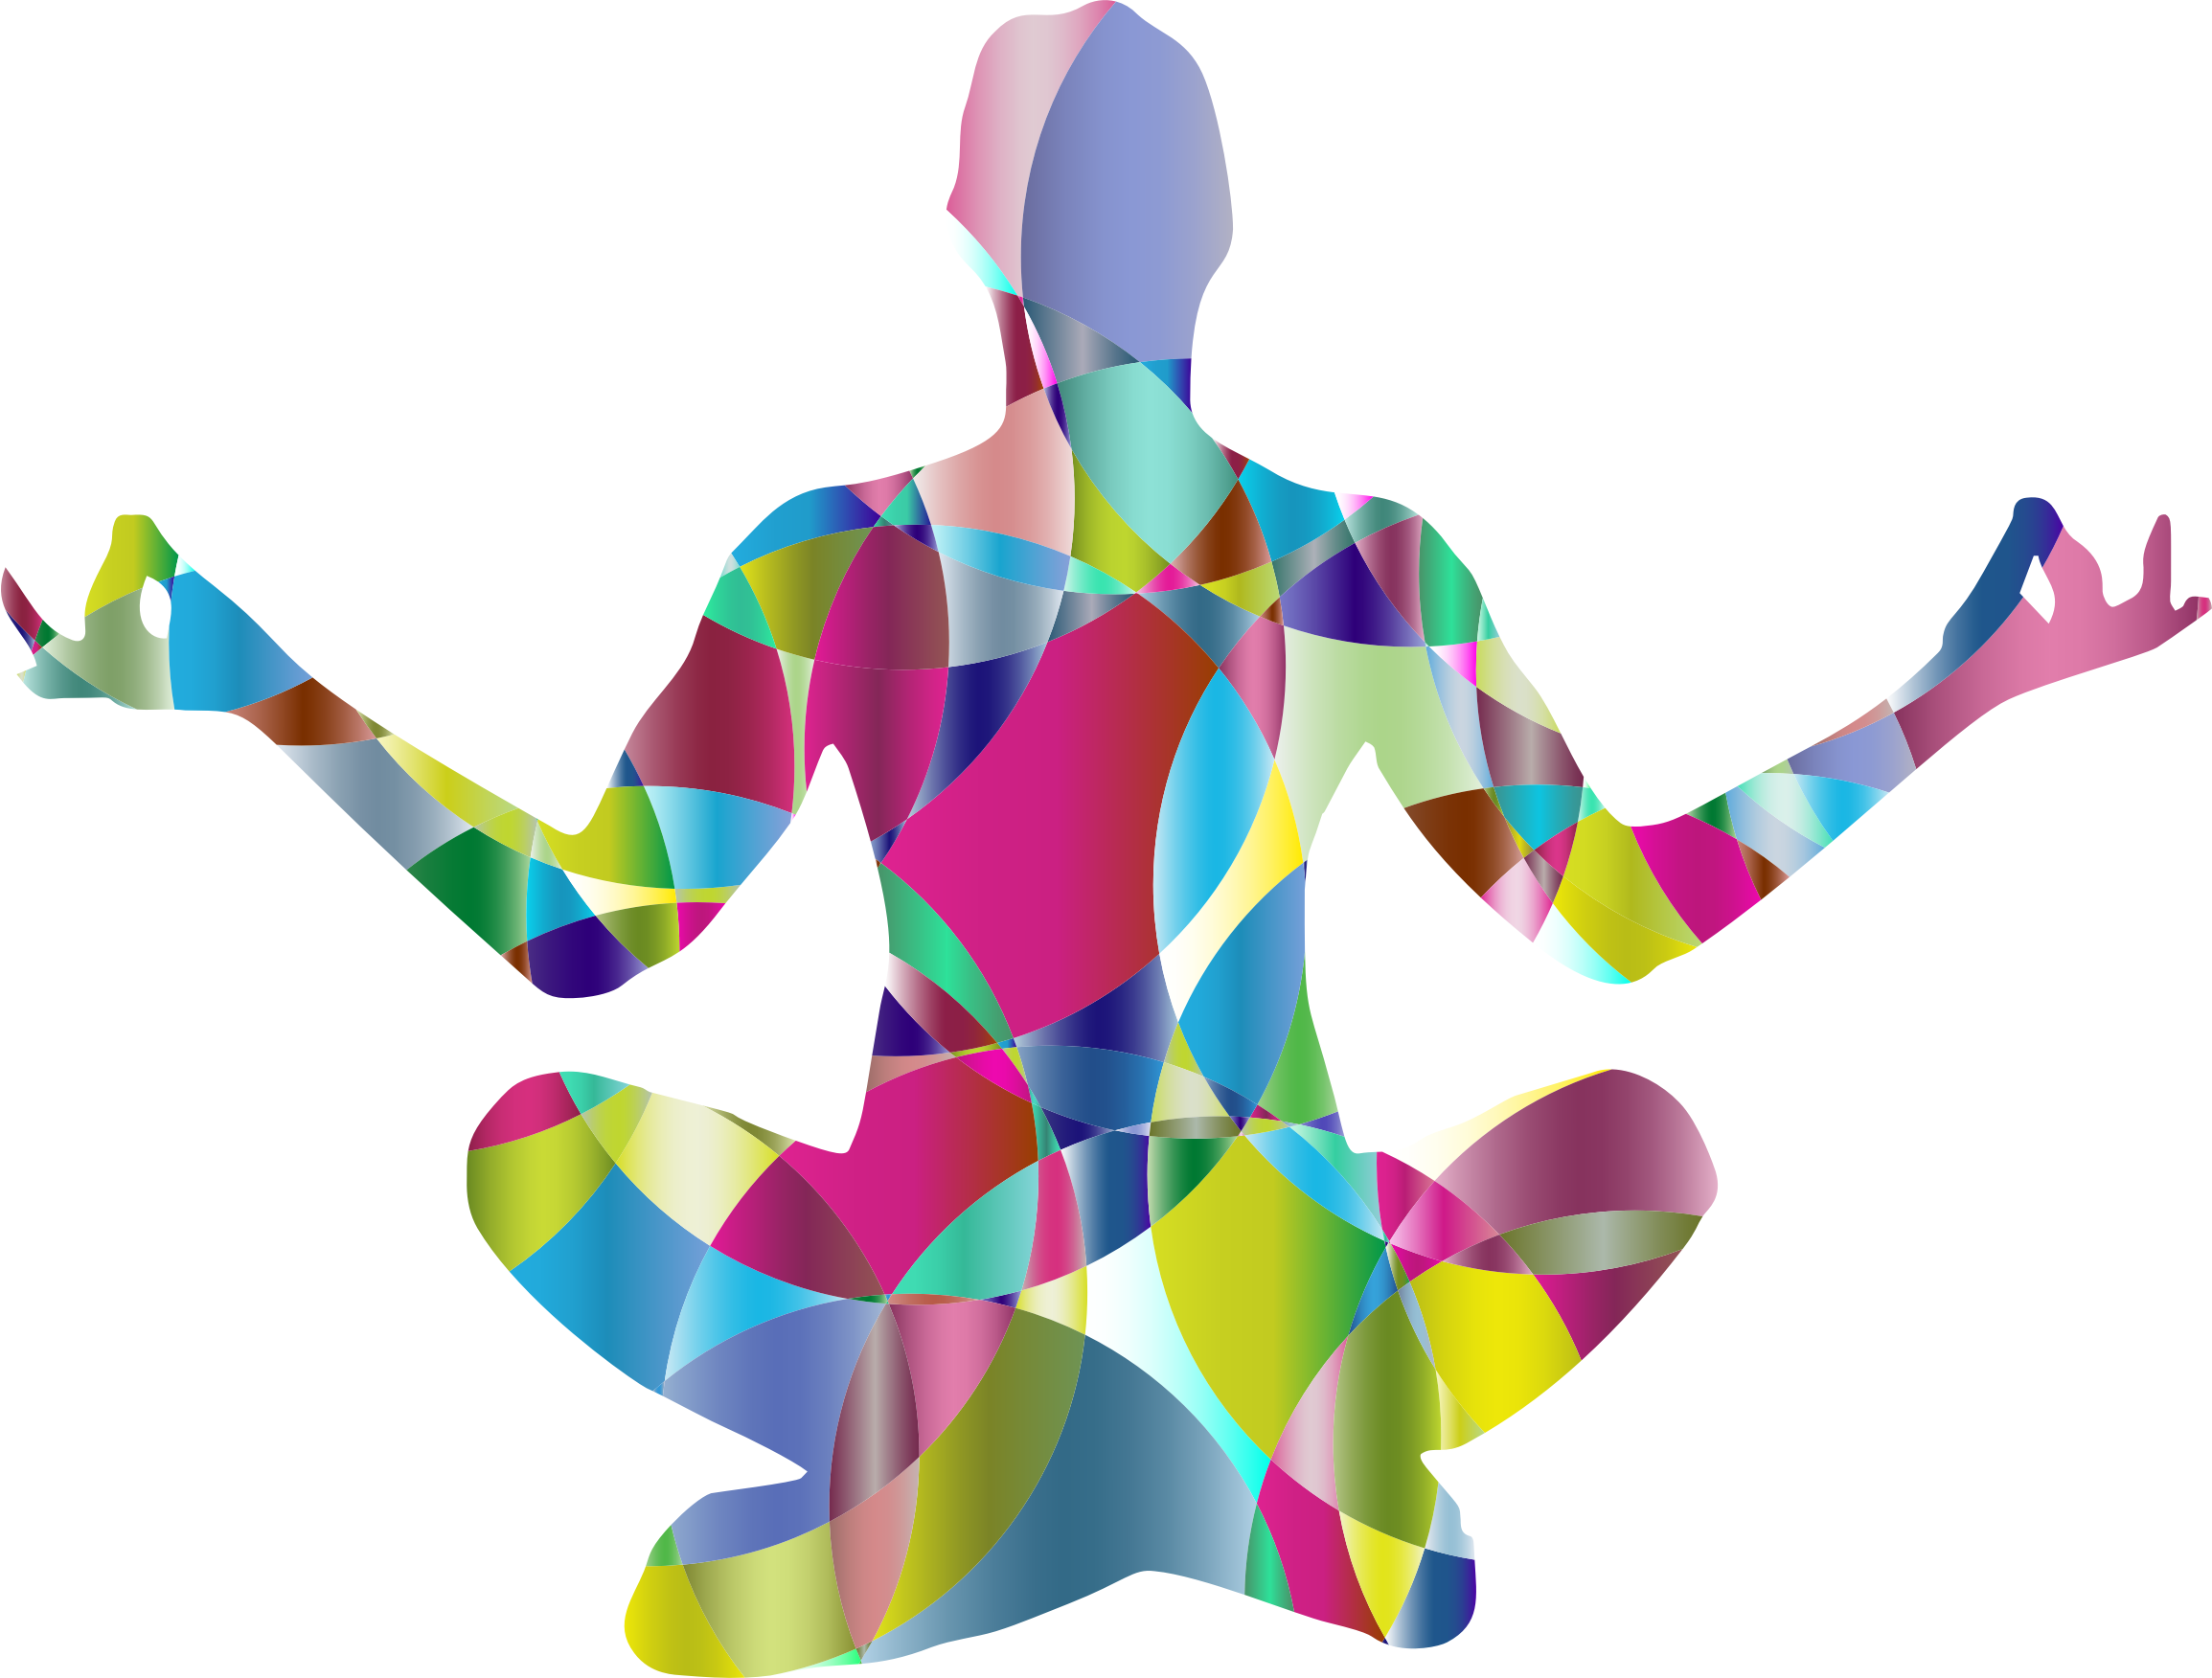 Dancer clipart abstract. Prismatic female yoga pose